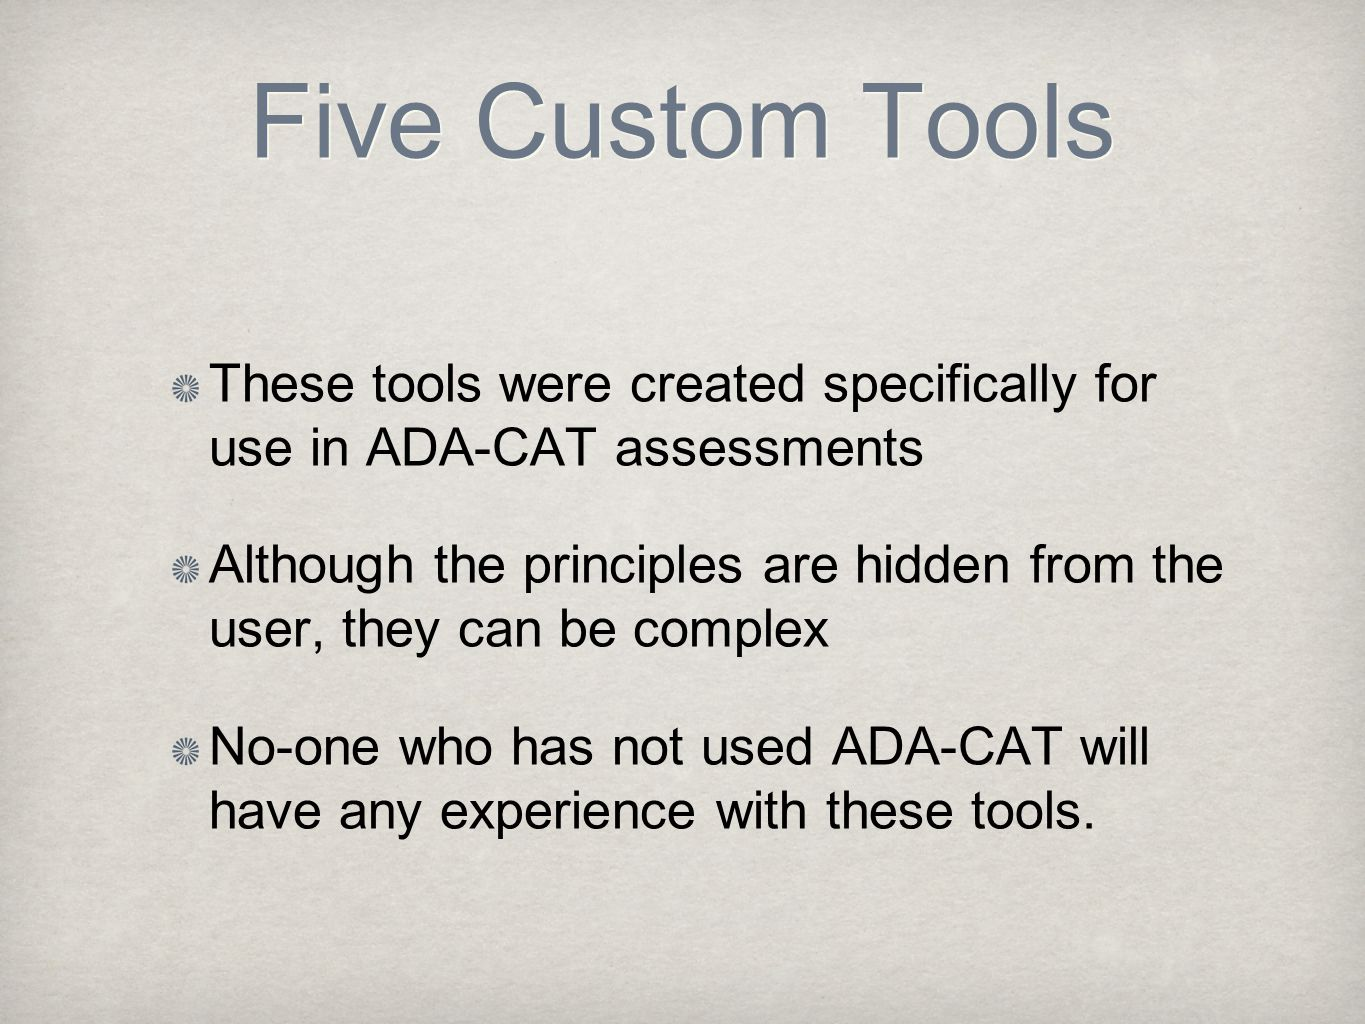 Five Custom Tools These tools were created specifically for use in ADA-CAT assessments Although the principles are hidden from the user, they can be complex No-one who has not used ADA-CAT will have any experience with these tools.